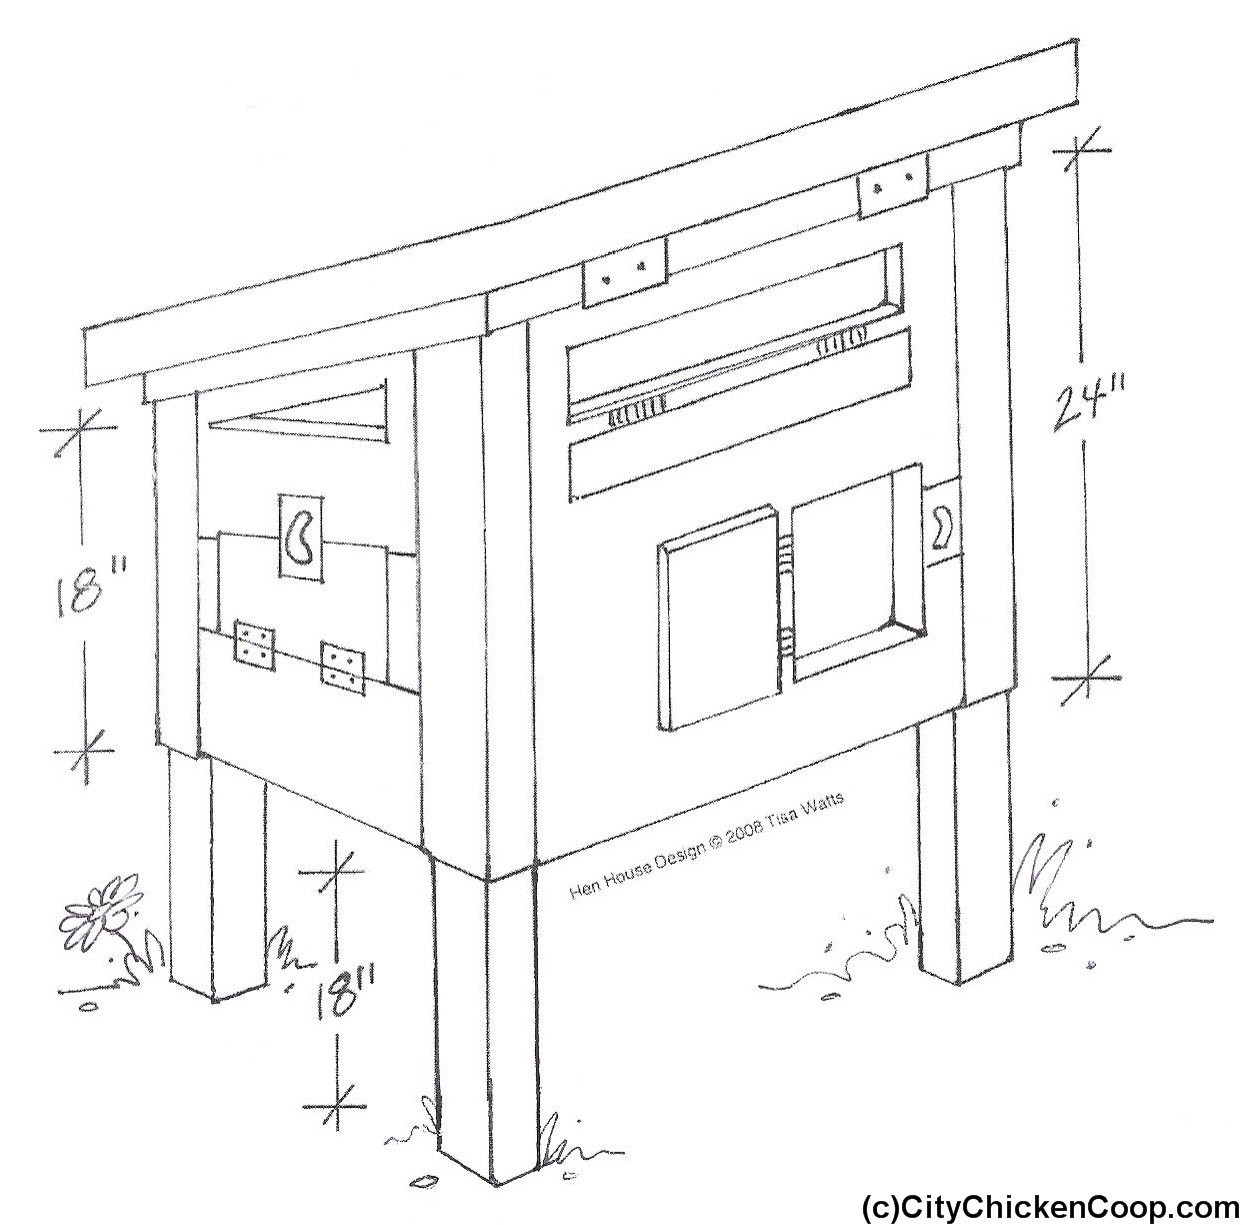 Image detail for small chicken coop building plans for Small chicken house plans